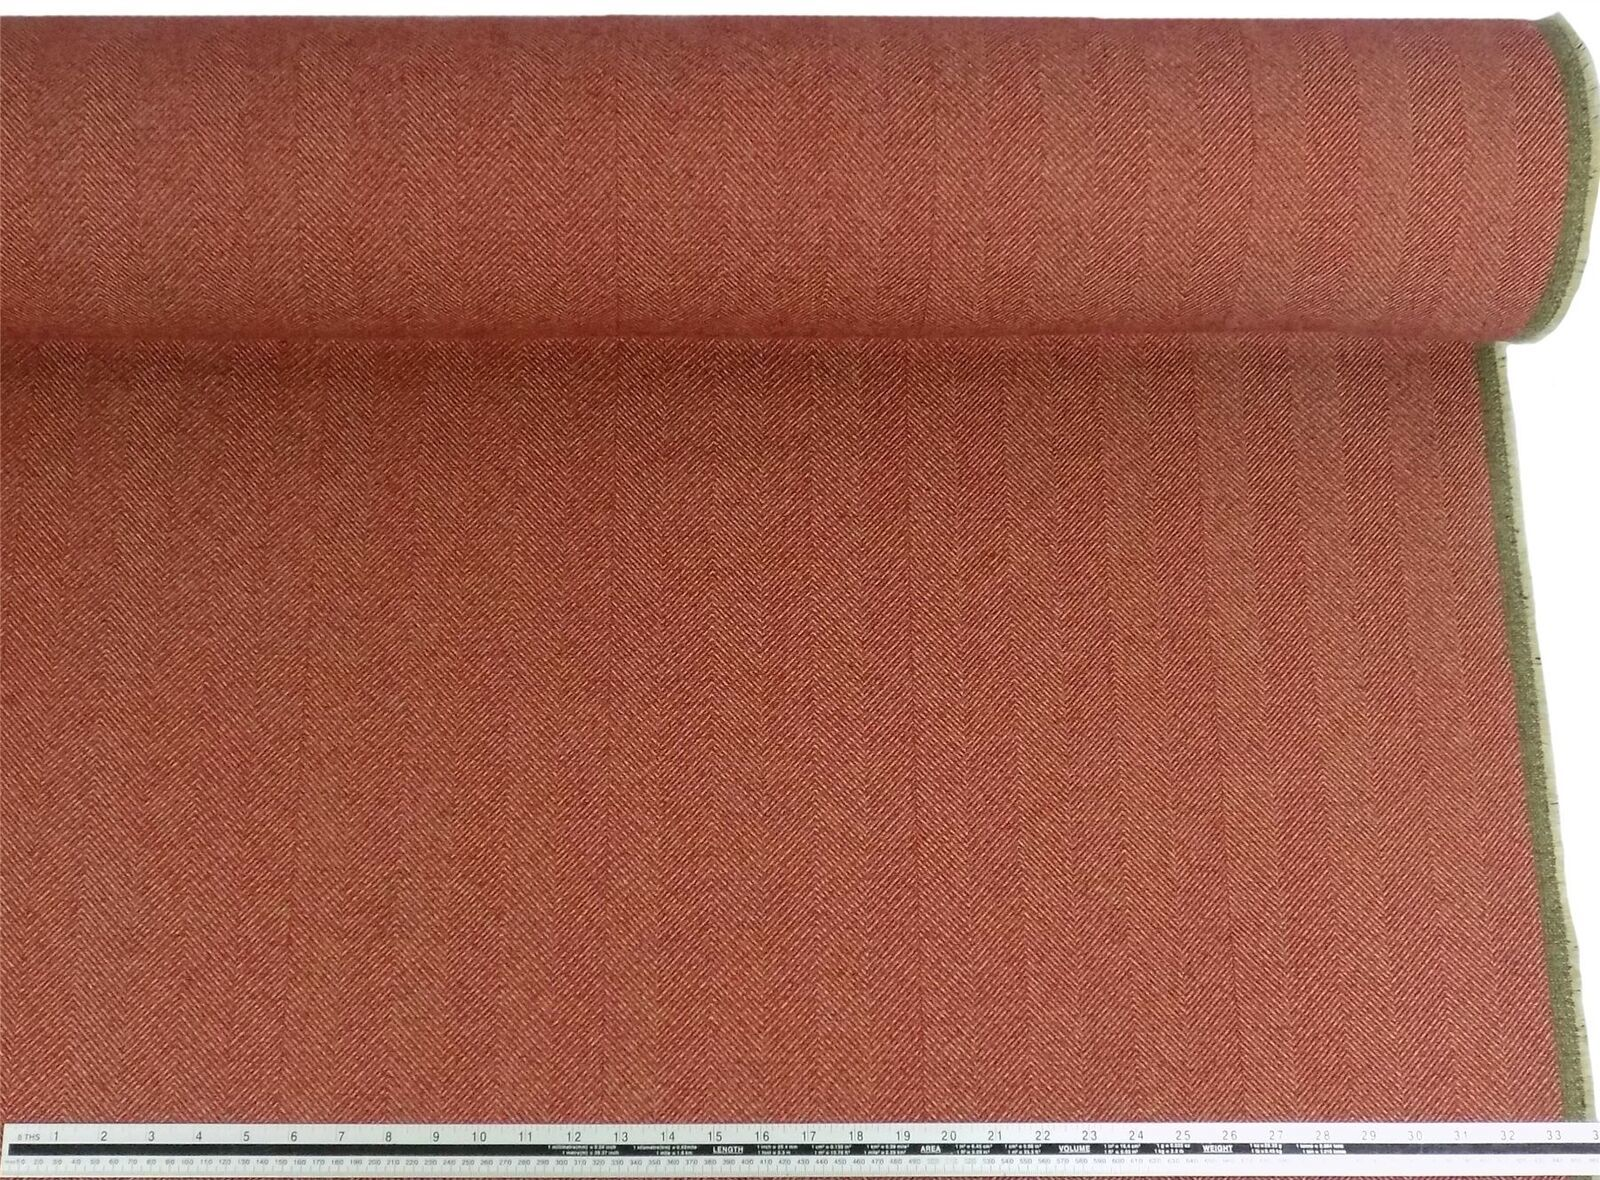 Herringbone Wool Look and Feel Red Upholstery Fabric Material *2 Sizes*